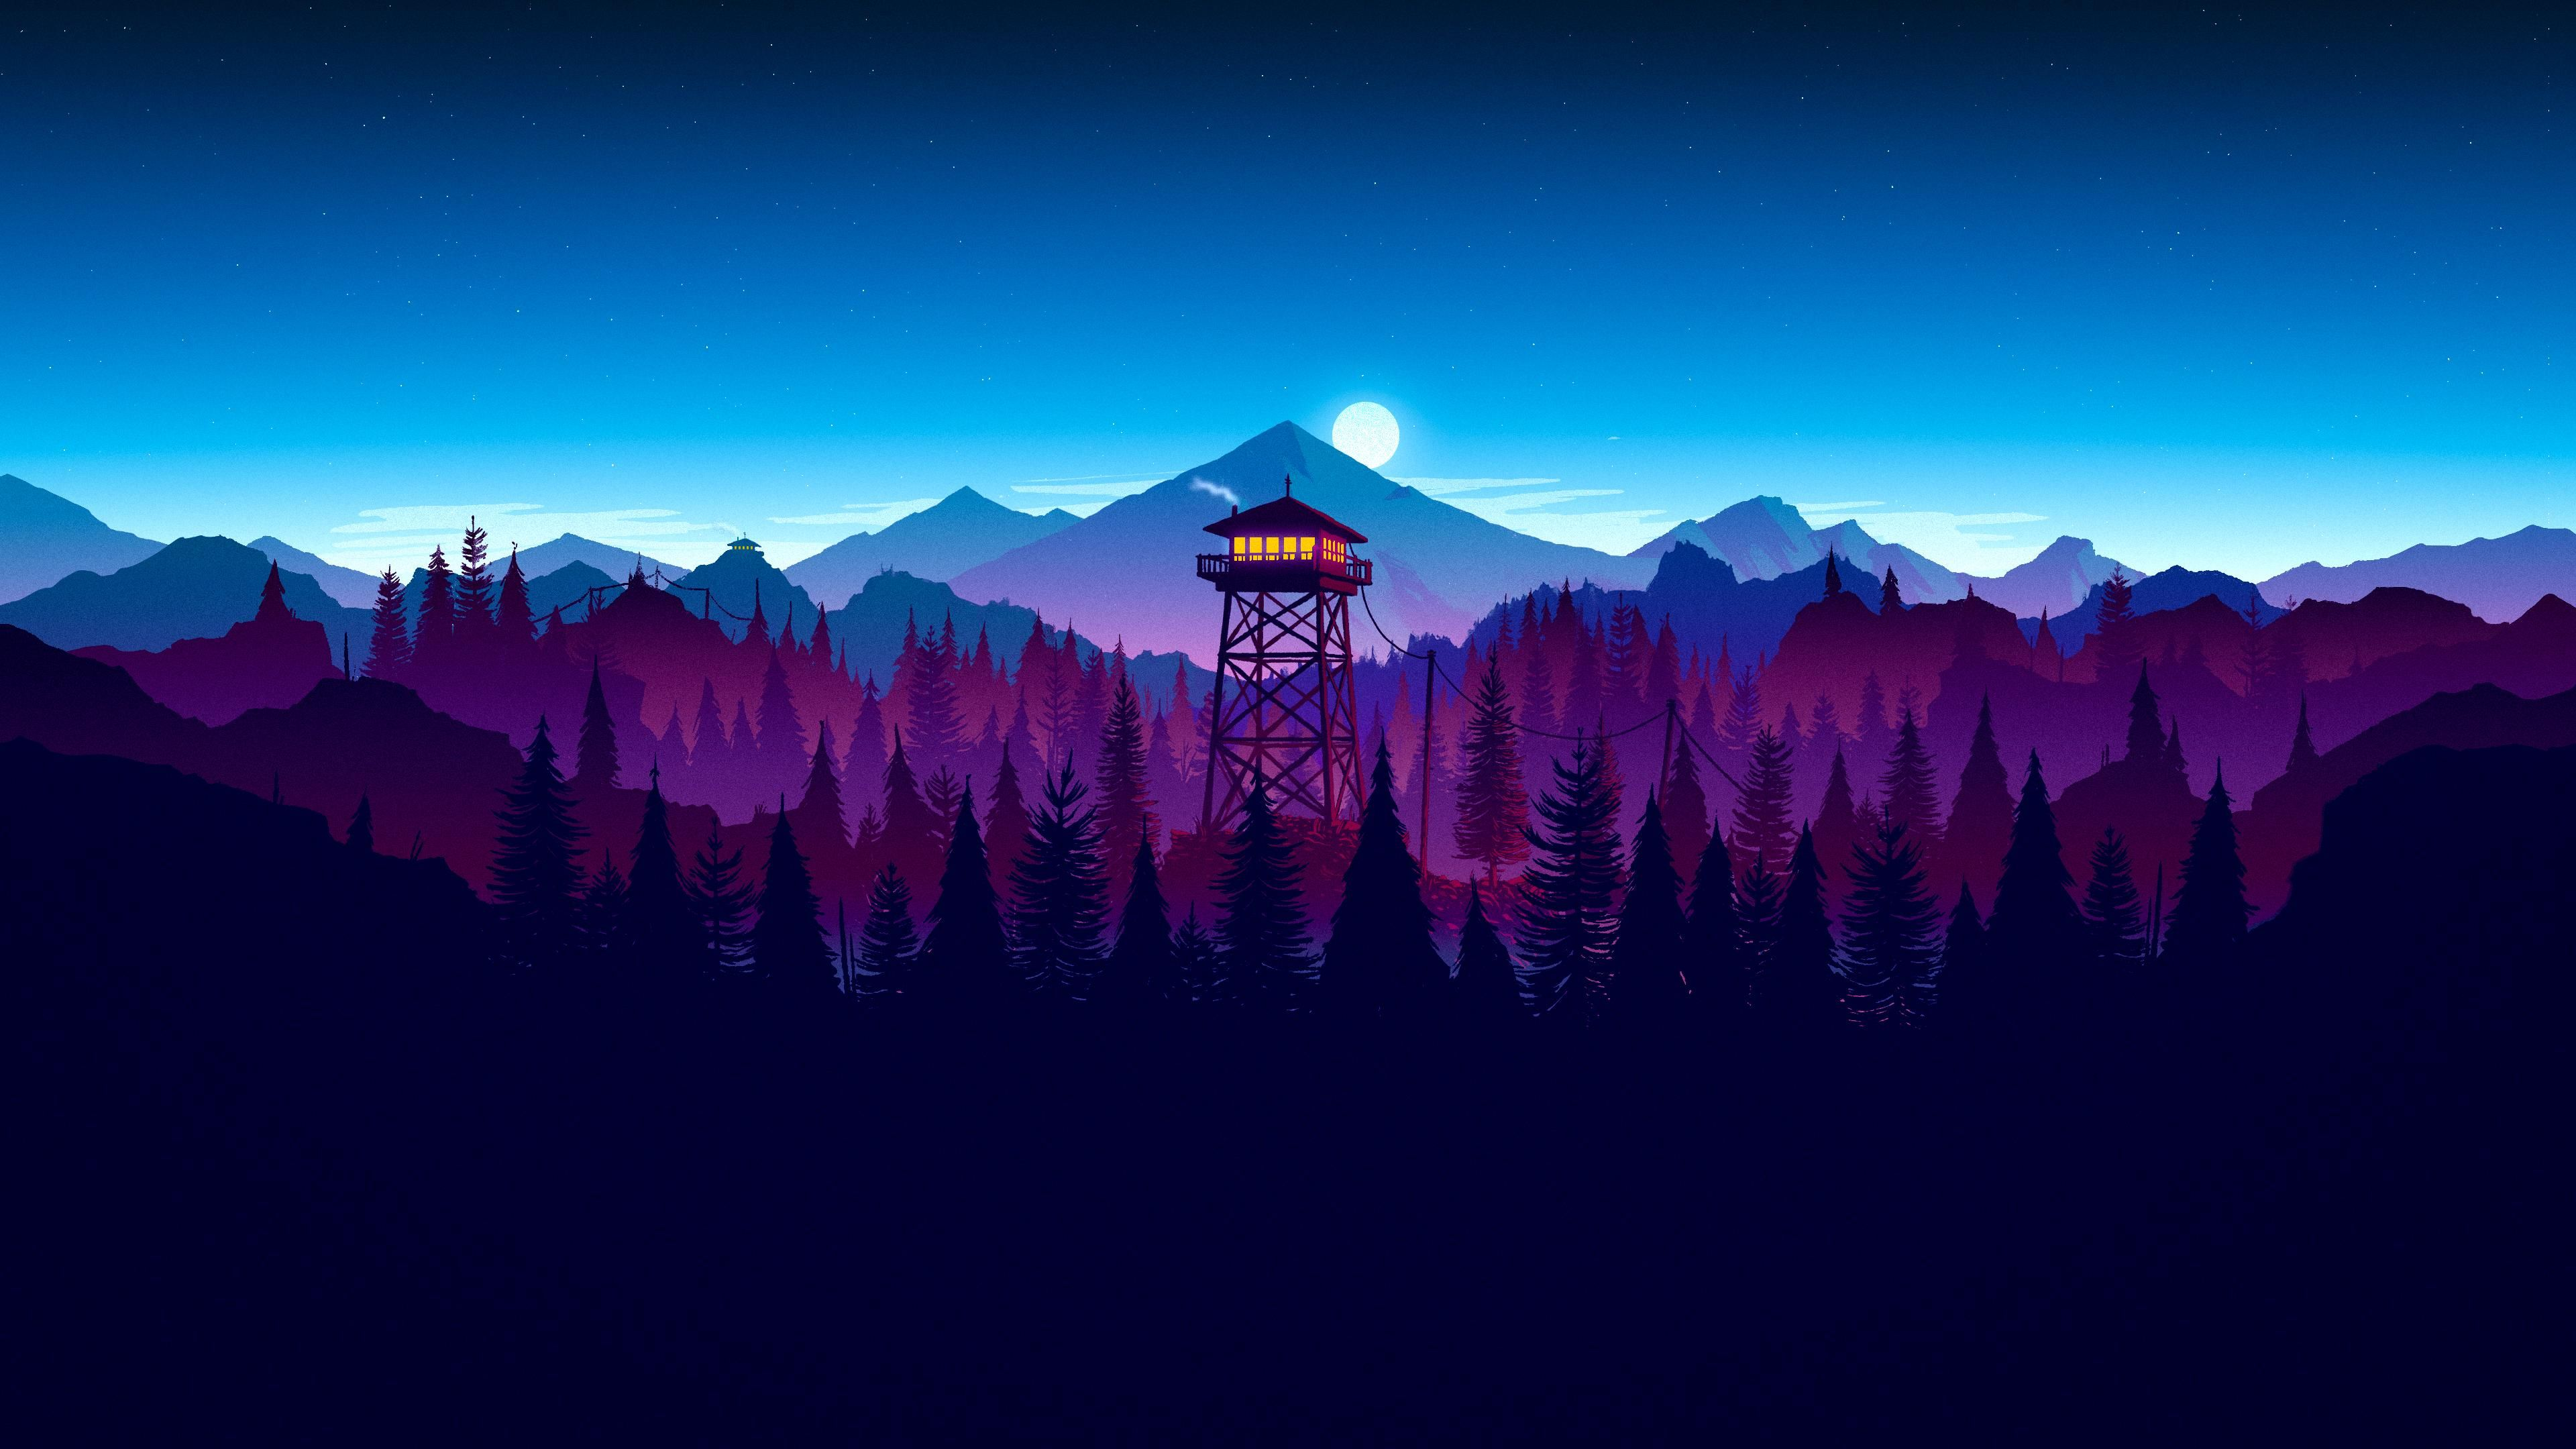 Firewatch Sunset Sunset artwork, Digital wallpaper